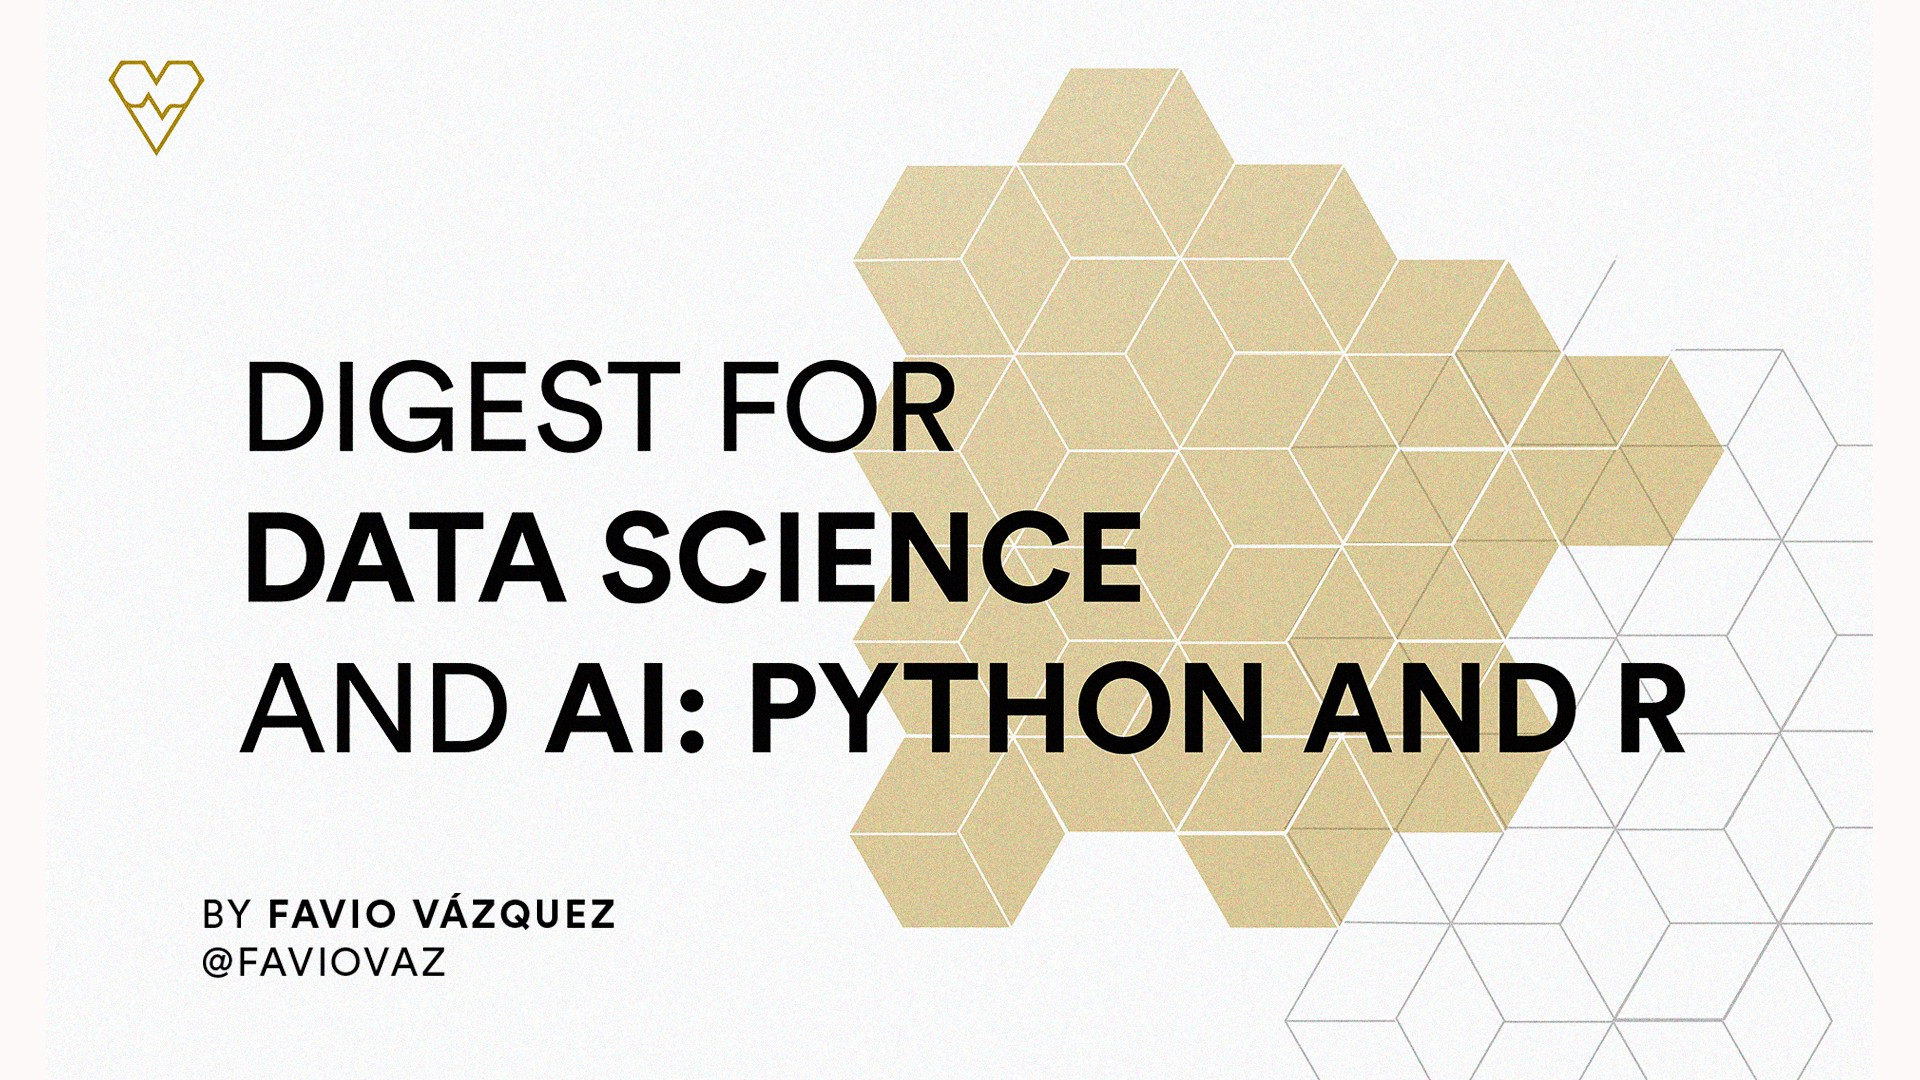 Weekly Digest for Data Science and AI: Python and R (Volume 7)